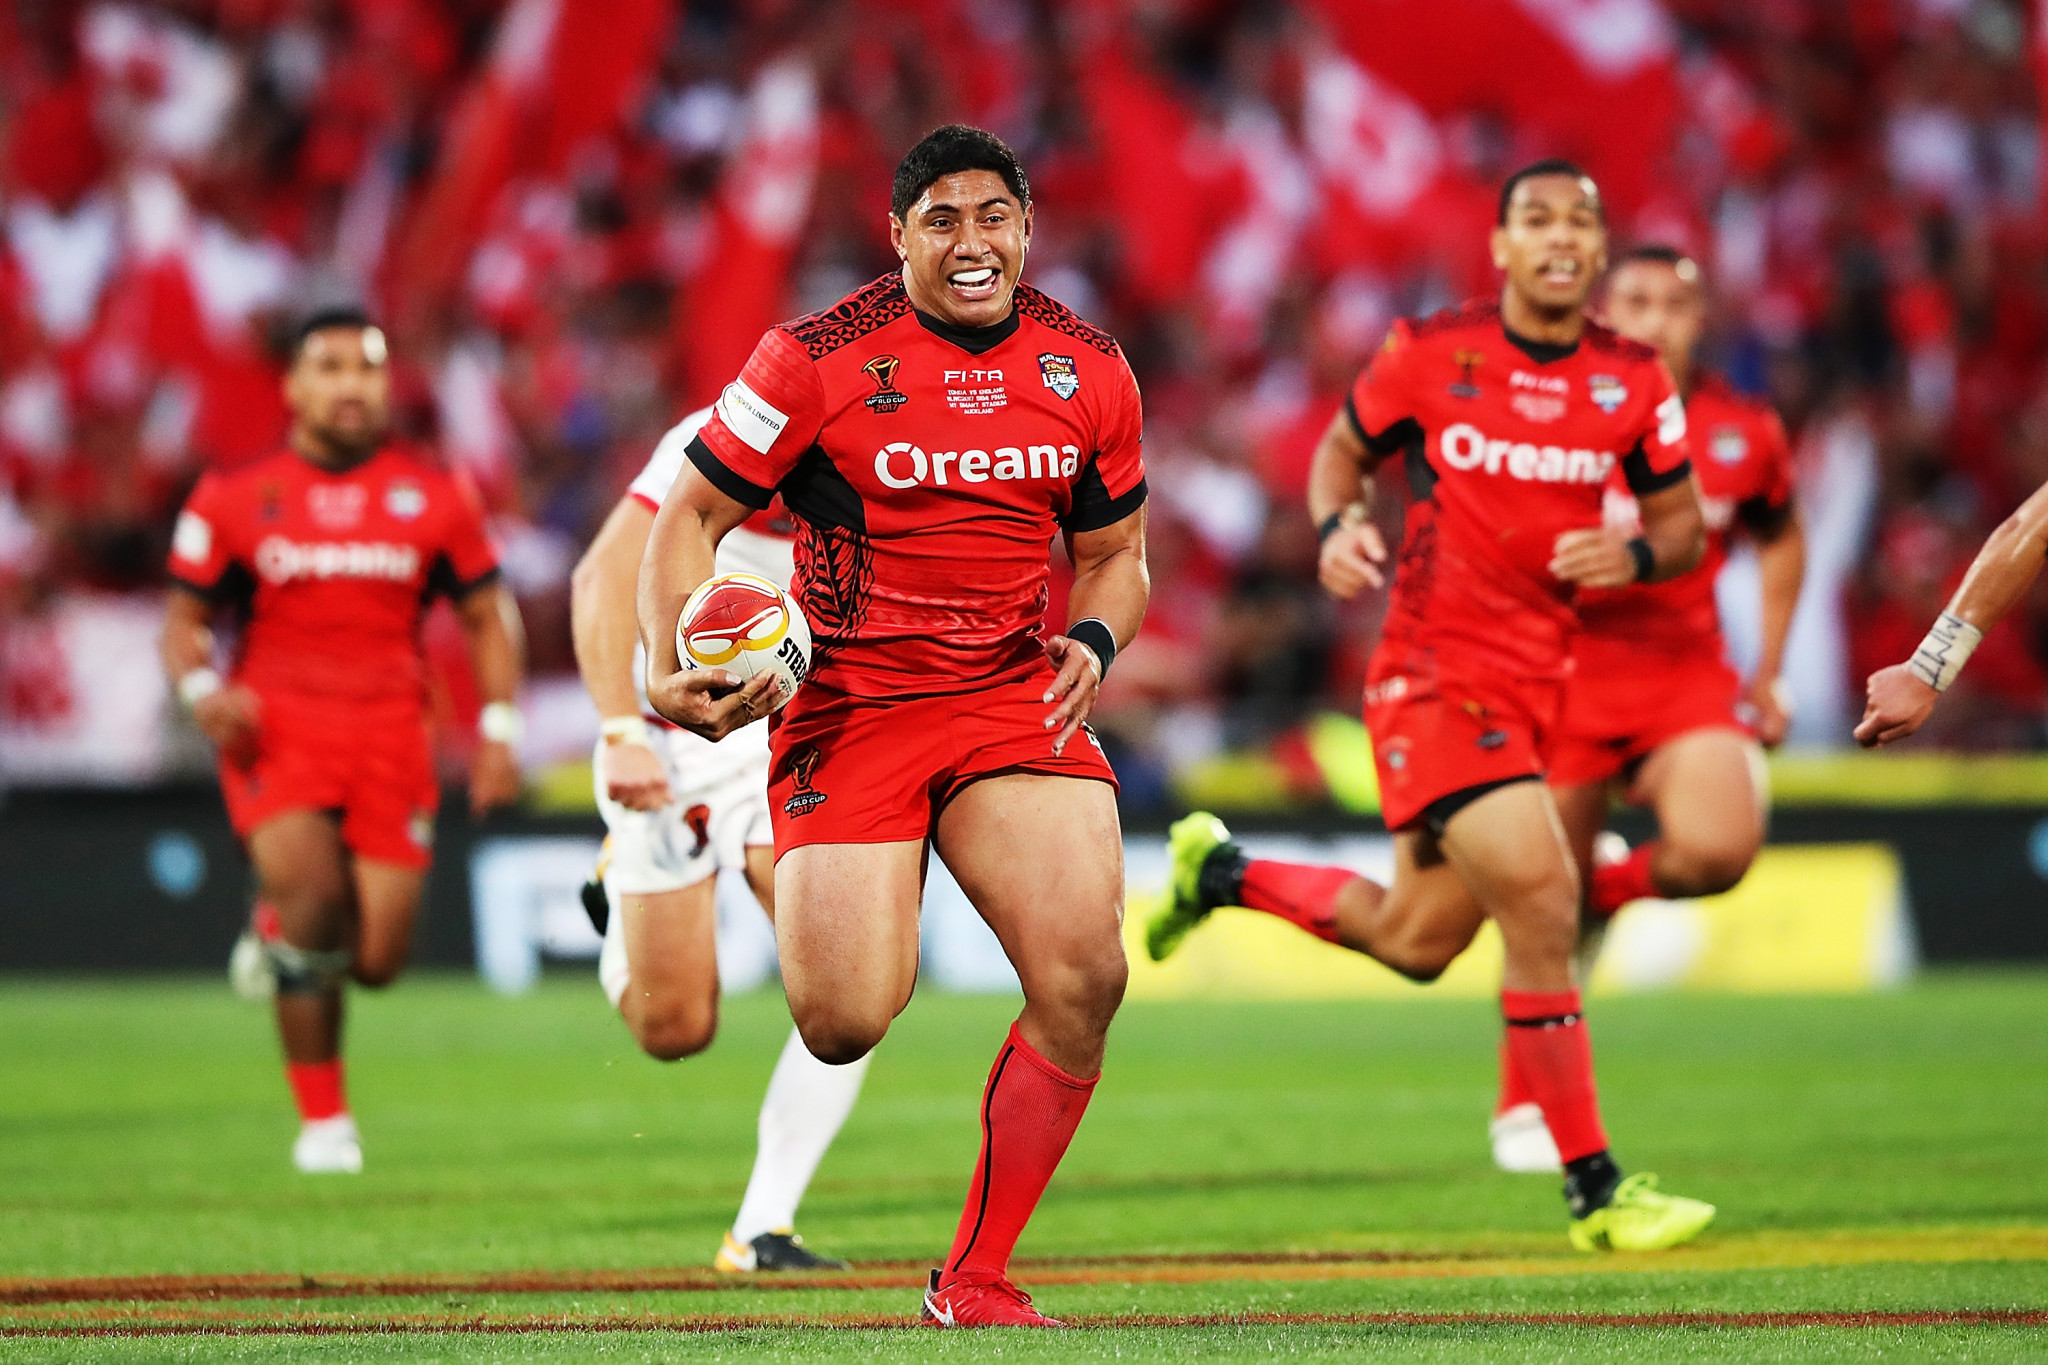 A late Tonga surge saw the Pacific nation threaten a dramatic comeback ©Getty Images